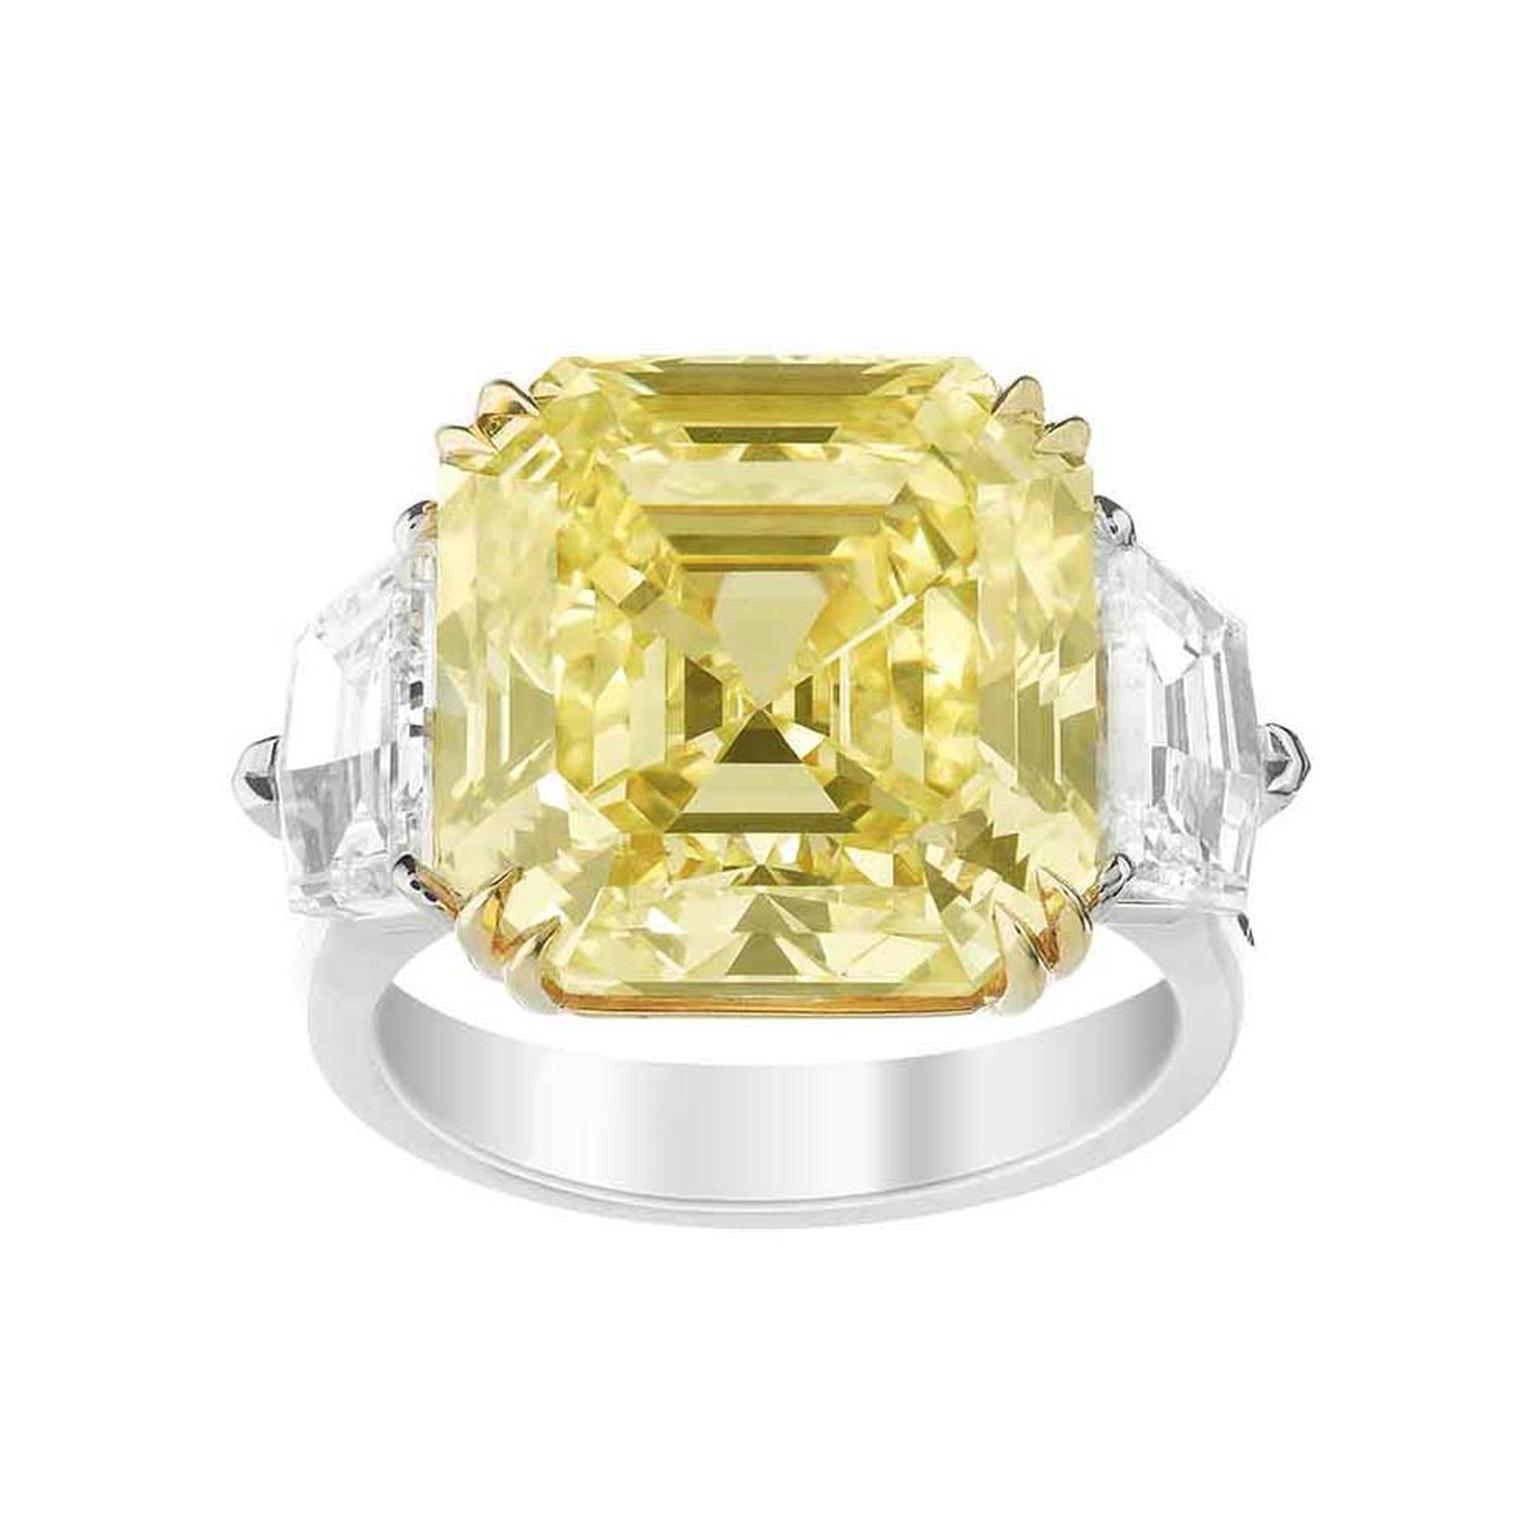 Boucheron Jaune Imperial 15.00ct emerald cut yellow diamond engagement ring in white gold and platinum flanked by two colourless diamonds (£POA).